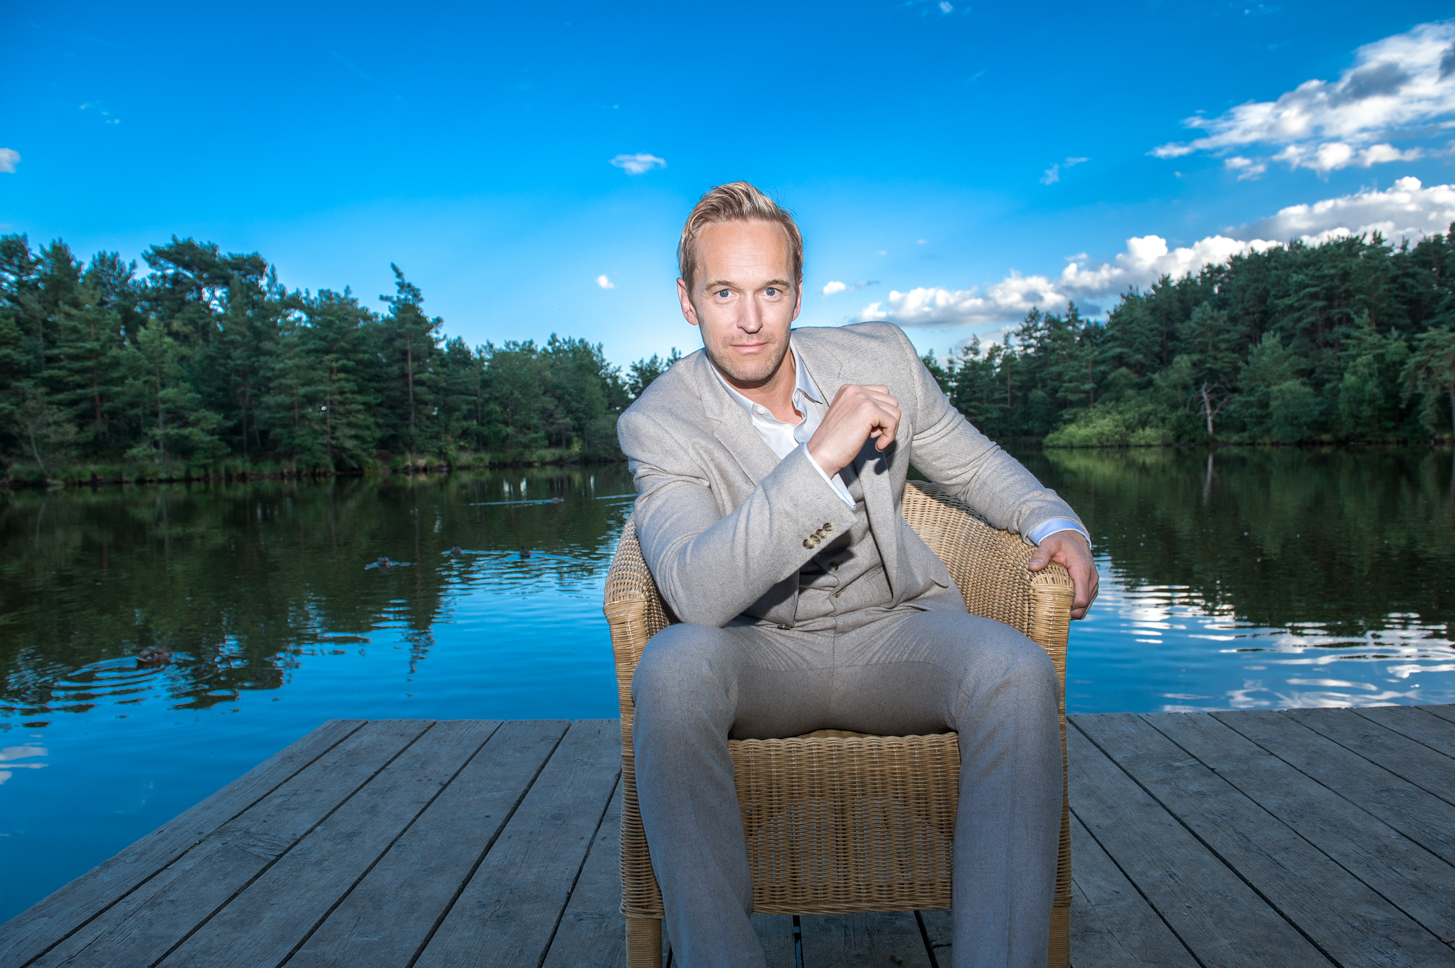 Man by the lake. Wedding photography by Farnham, Surrey based portrait and fashion photographer James Muller